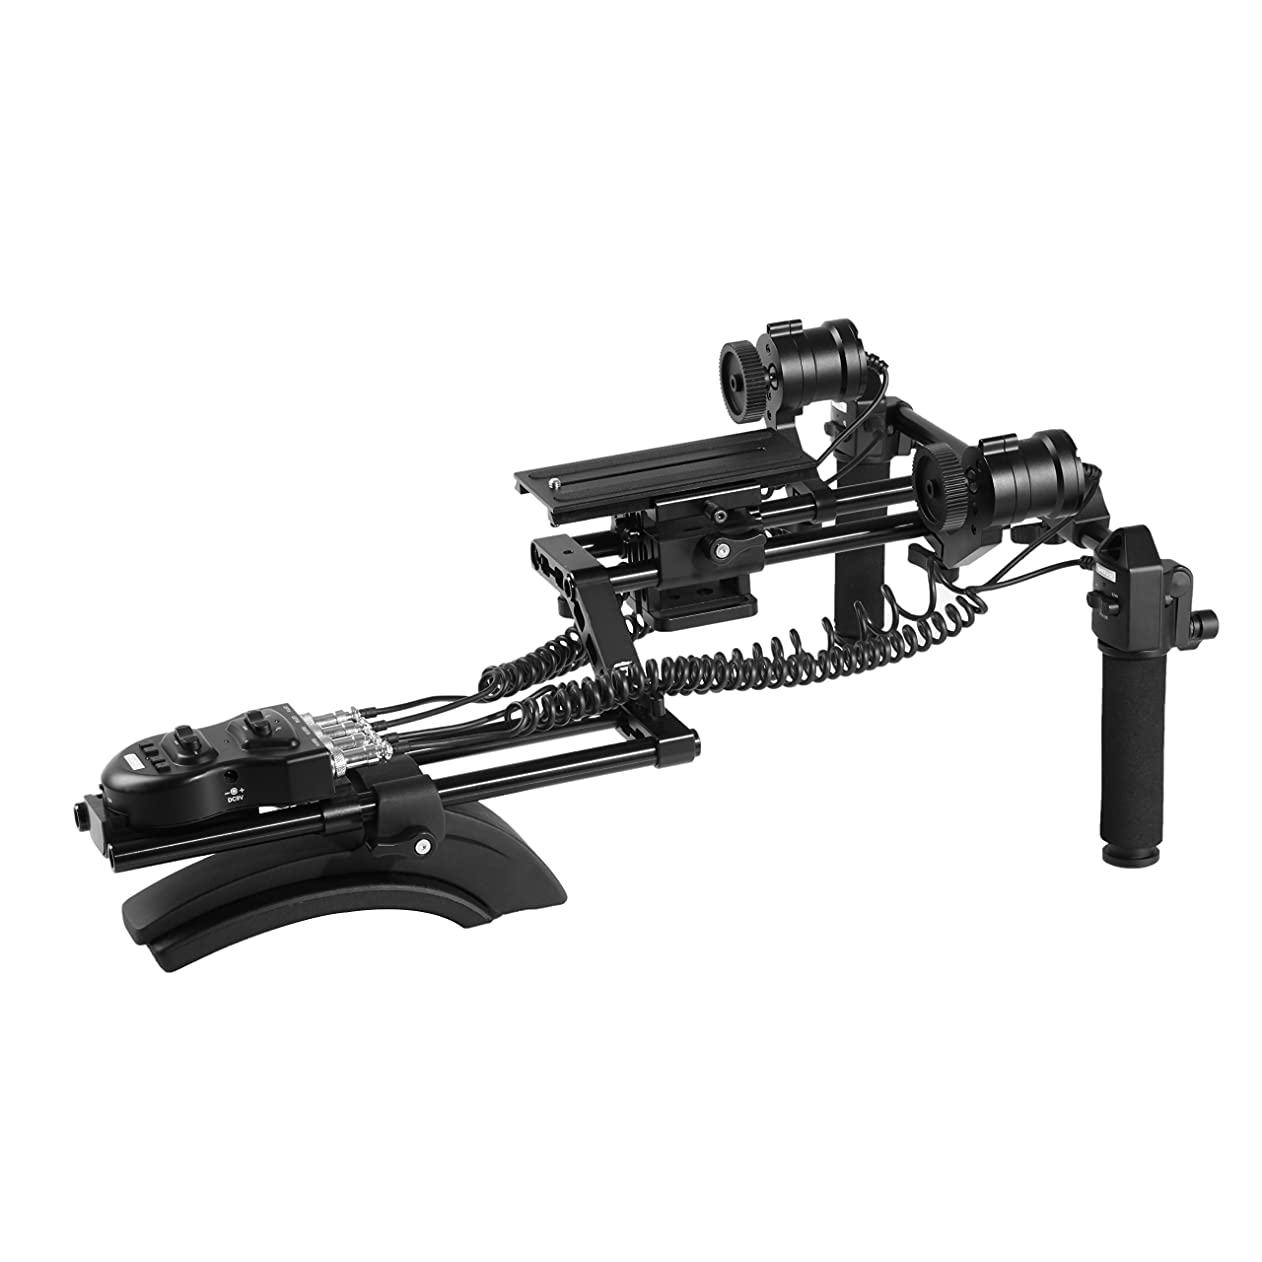 Movo MFF400 Premium Motorized Follow Focus and Zoom Control Video Shoulder Rig for HD DSLR Cameras qgfxiscbehc39607